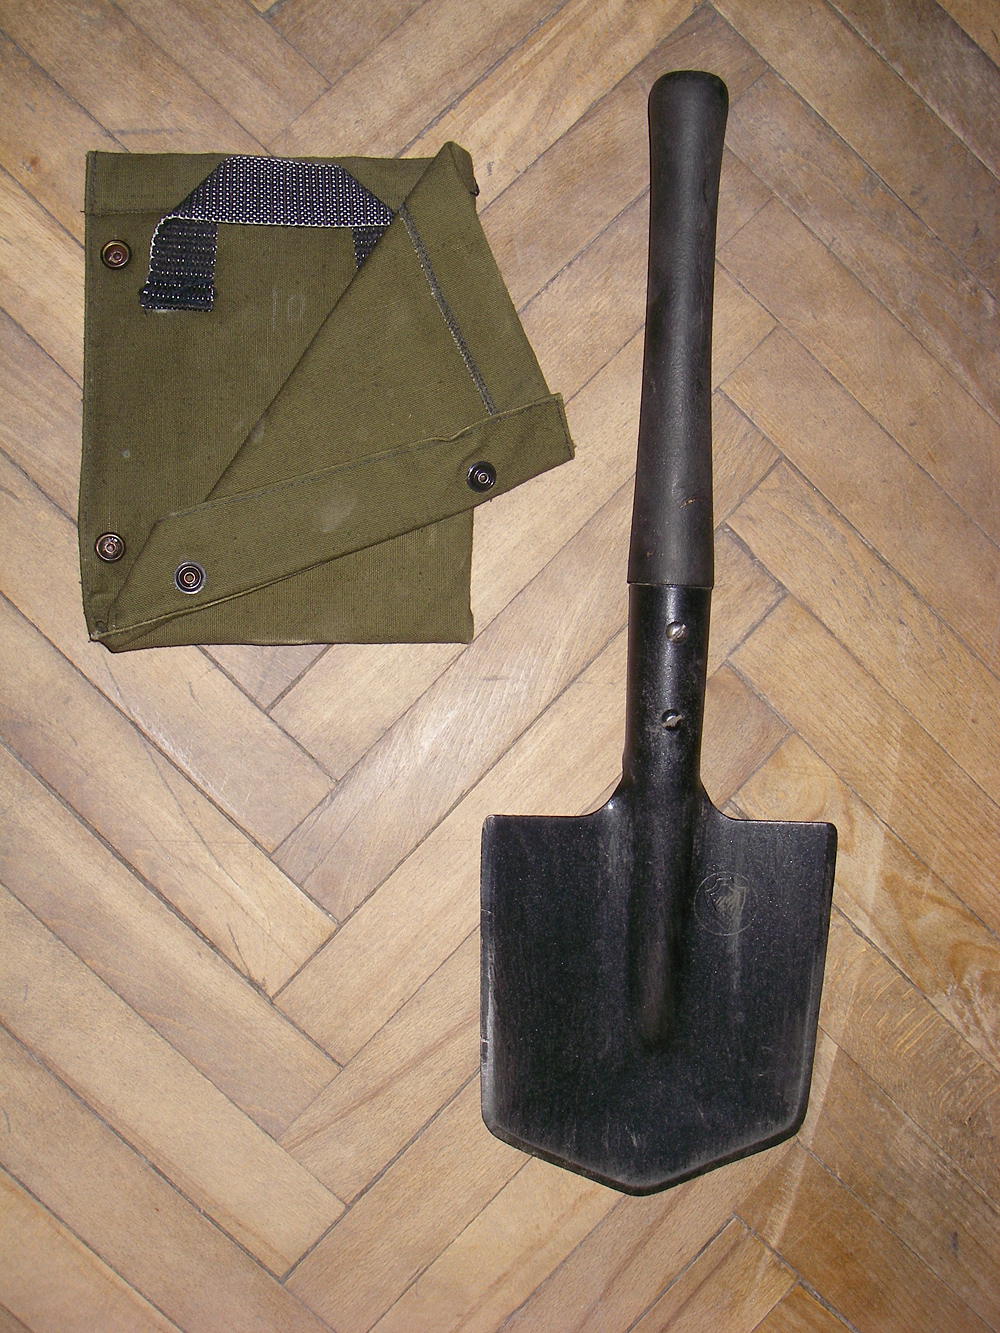 Post-WWII design. The blade cover to the left allows wearing the MPL-50 on the belt, in the blade up orientation.